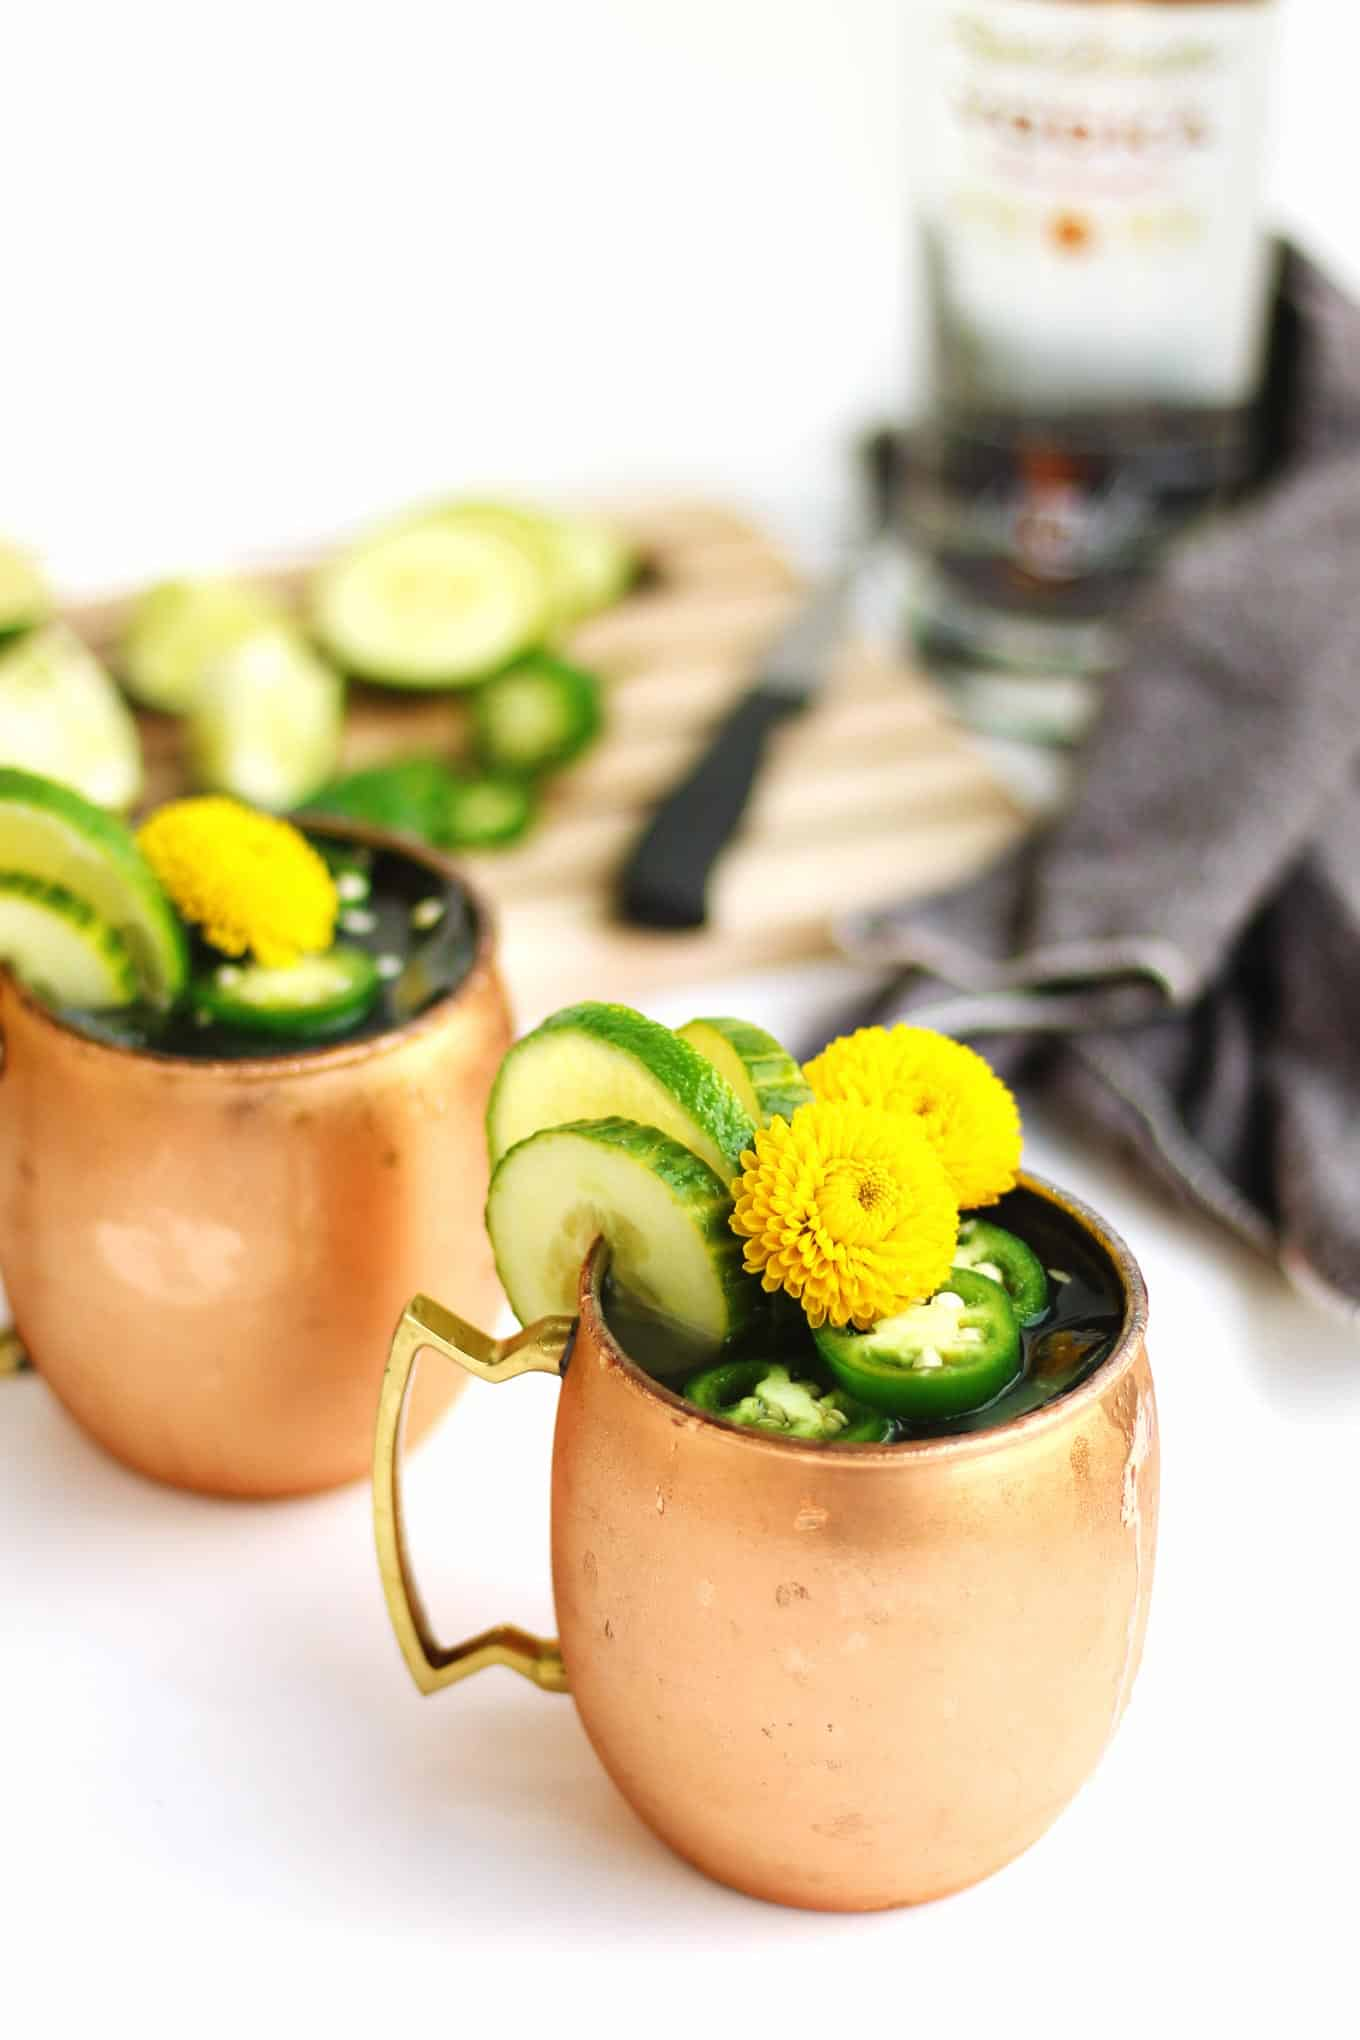 Jalapeno cucumber moscow mule recipe! A spicy, flavorful twist on the classic moscow mule cocktail with vodka, ginger beer, and lime. // Rhubarbarians